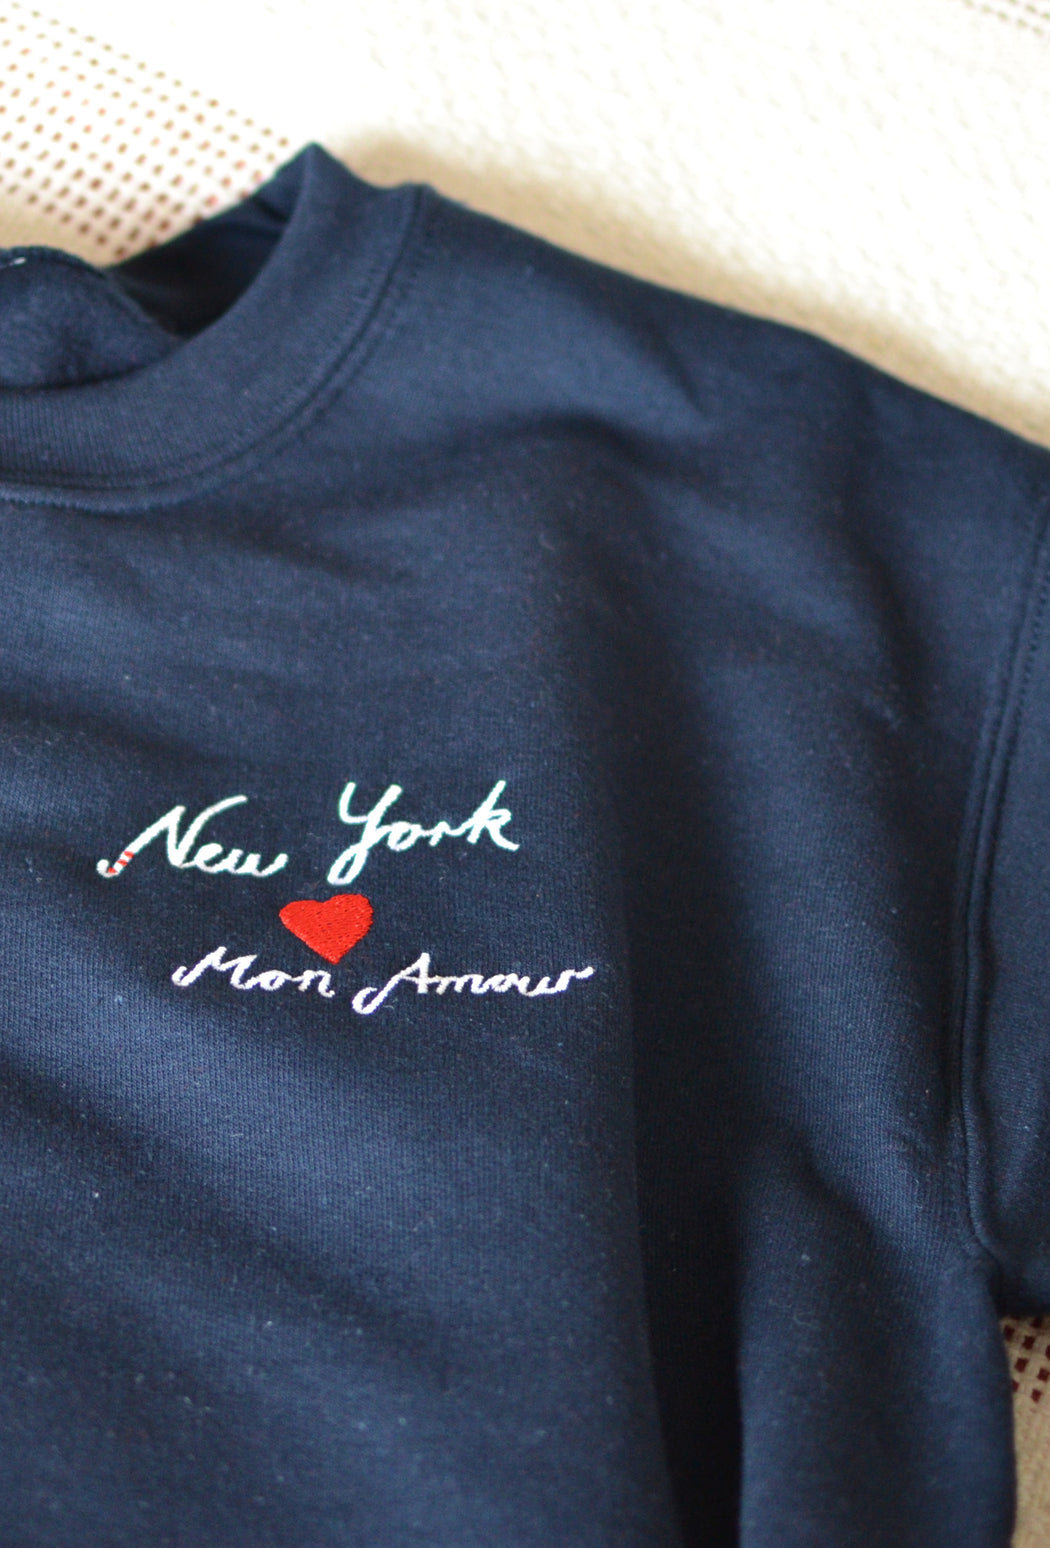 New York Mon Amour embroidered sweatshirt ♥